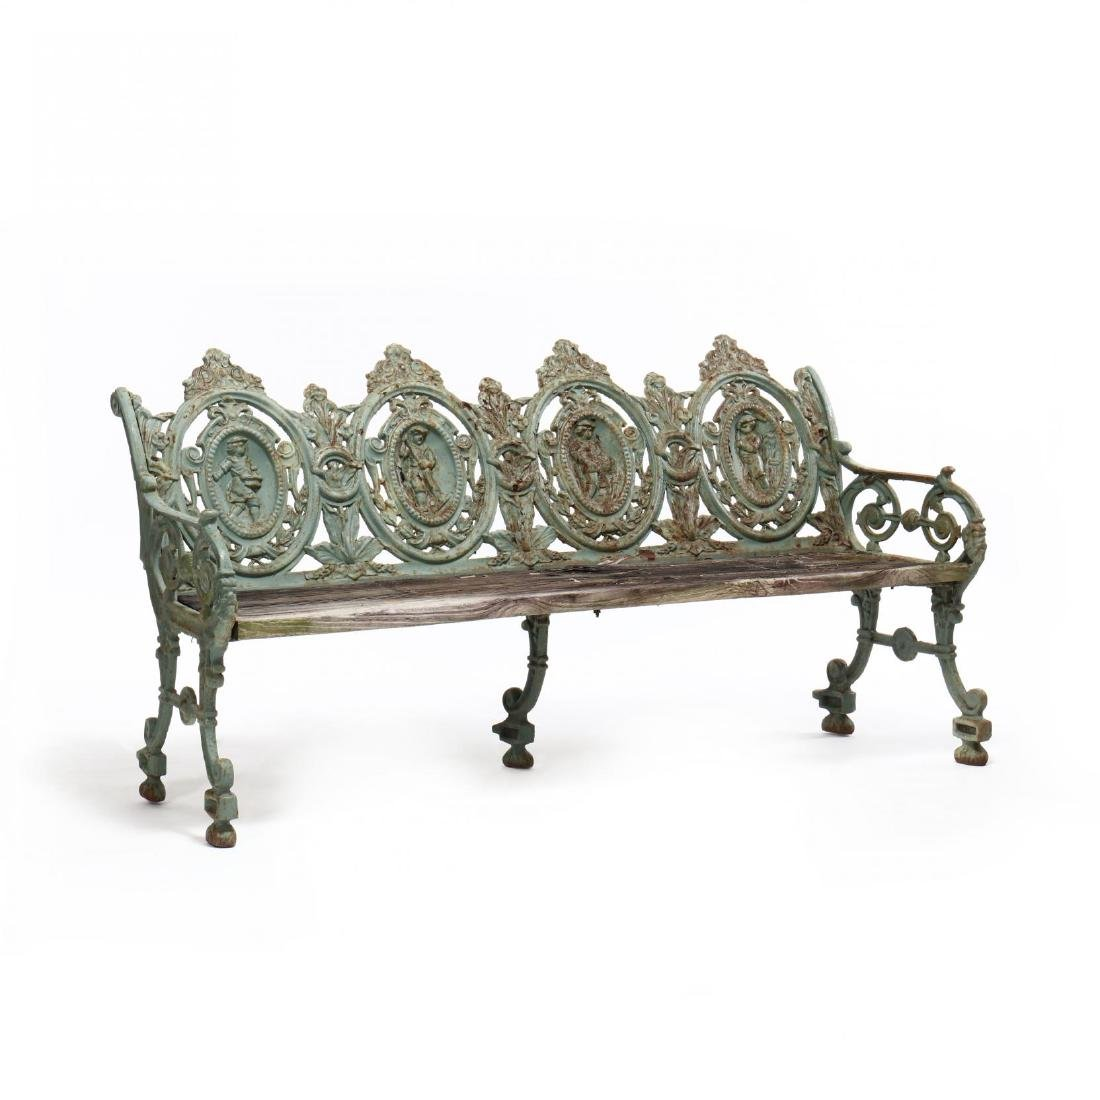 Pair of Renaissance Revival Cast Iron Garden Benches - 9